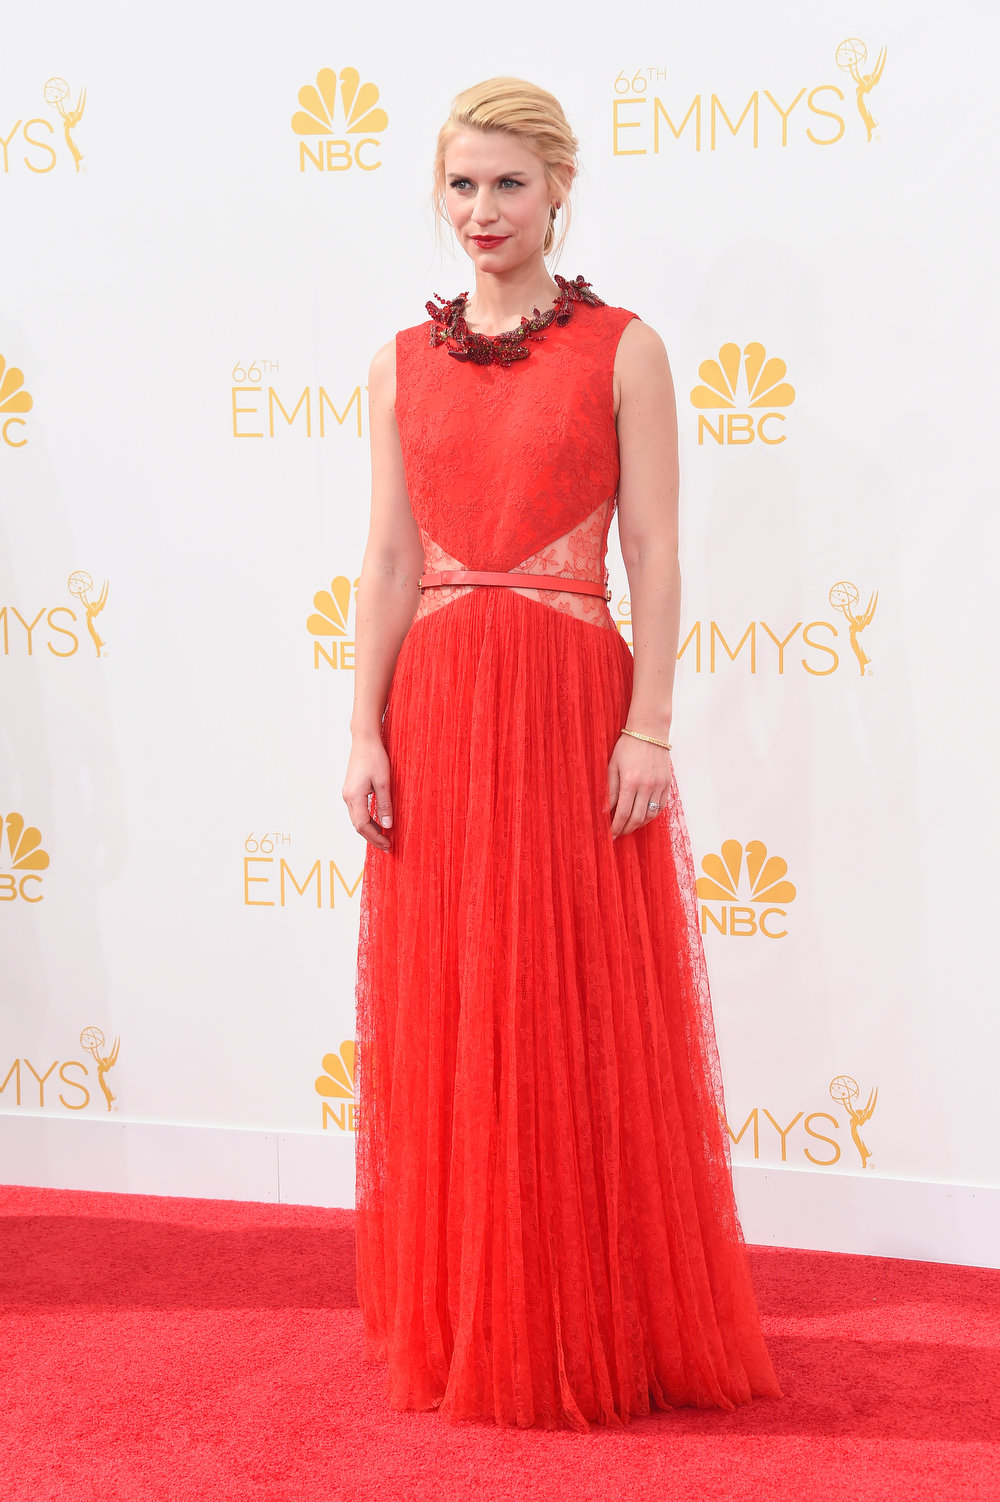 . Actress Claire Danes attends the 66th Annual Primetime Emmy Awards held at Nokia Theatre L.A. Live on August 25, 2014 in Los Angeles, California.  (Photo by Frazer Harrison/Getty Images)